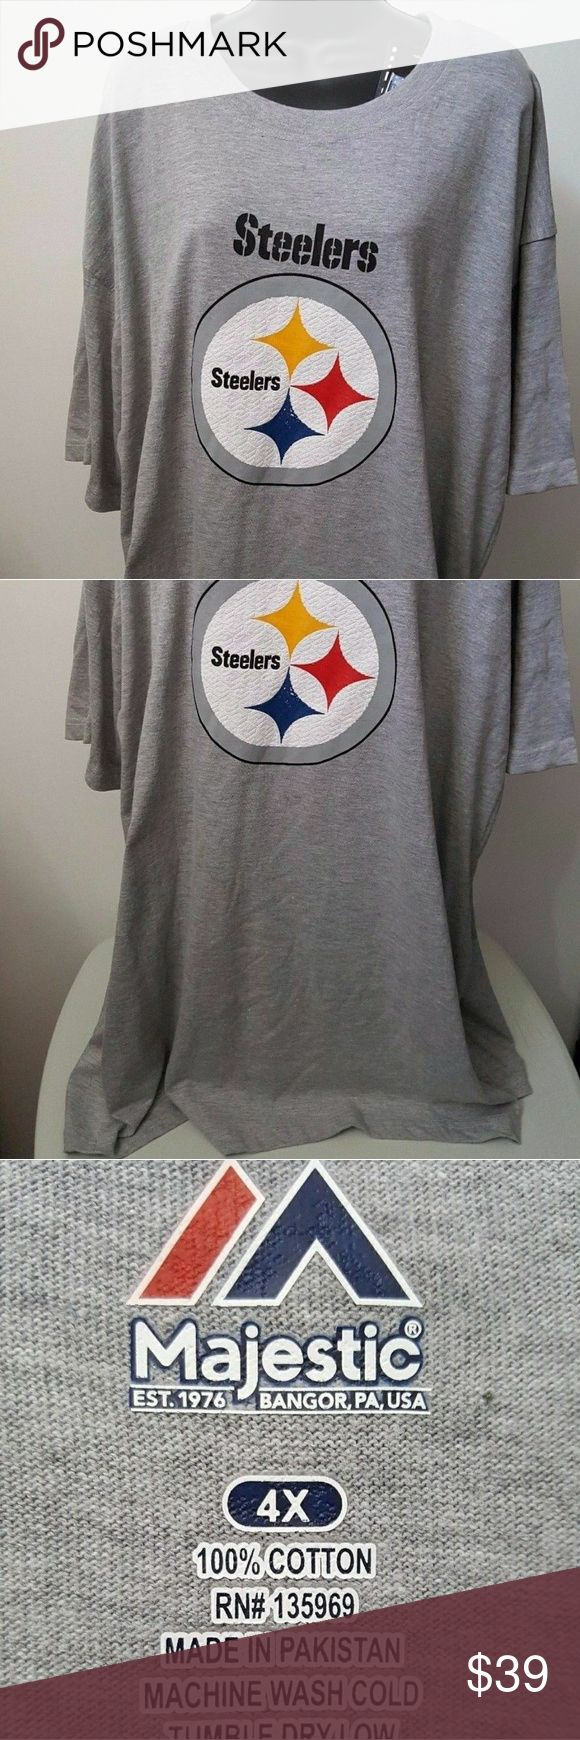 Majestic Pittsburgh Steelers T-shirt 4X This item is new with tags. Material is 100% cotton. Measurements from pit to pit is 31 inches. The length is 36 inches. Majestic Shirts Tees - Short Sleeve